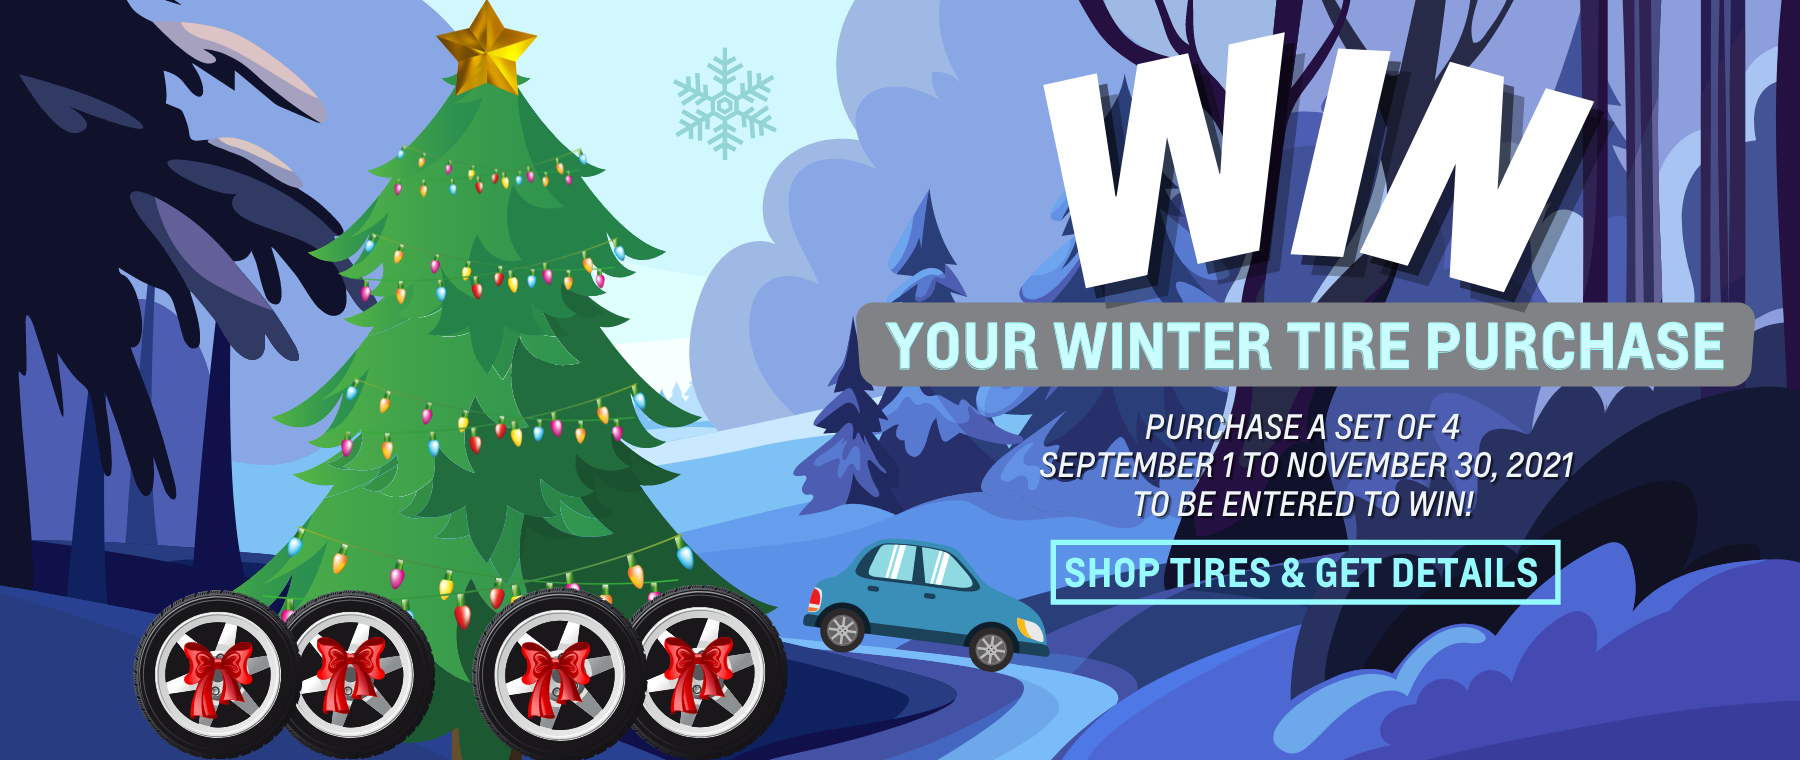 Win Your Winter Tire Purchase – SPC (5)